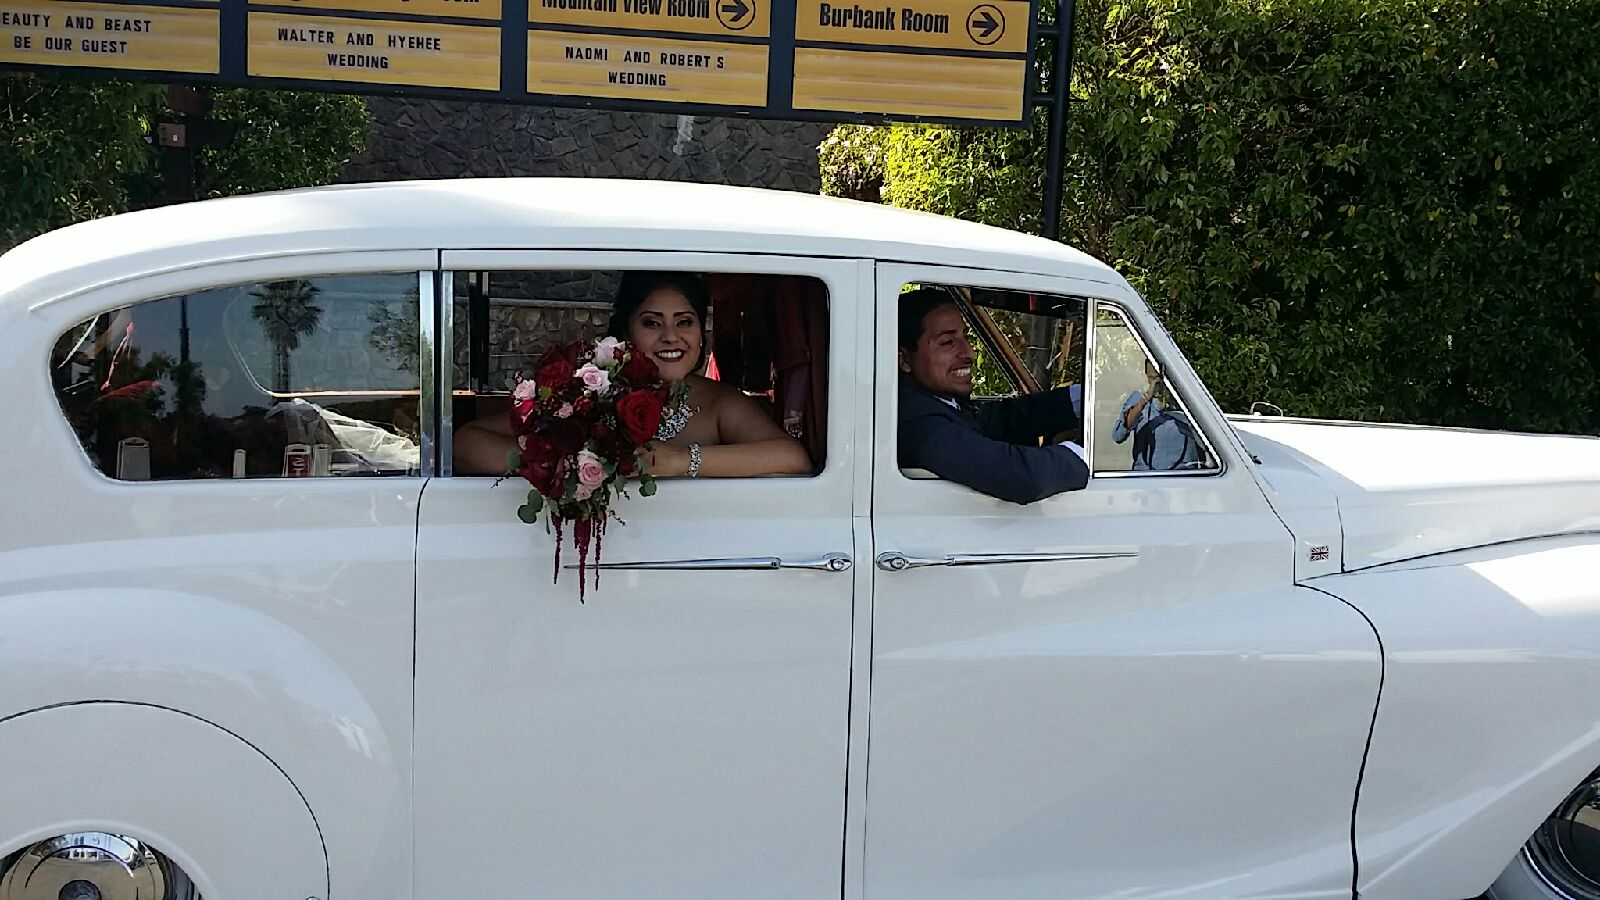 Classic Car wedding rentals Inland Empire, Claremont, Riverside ...